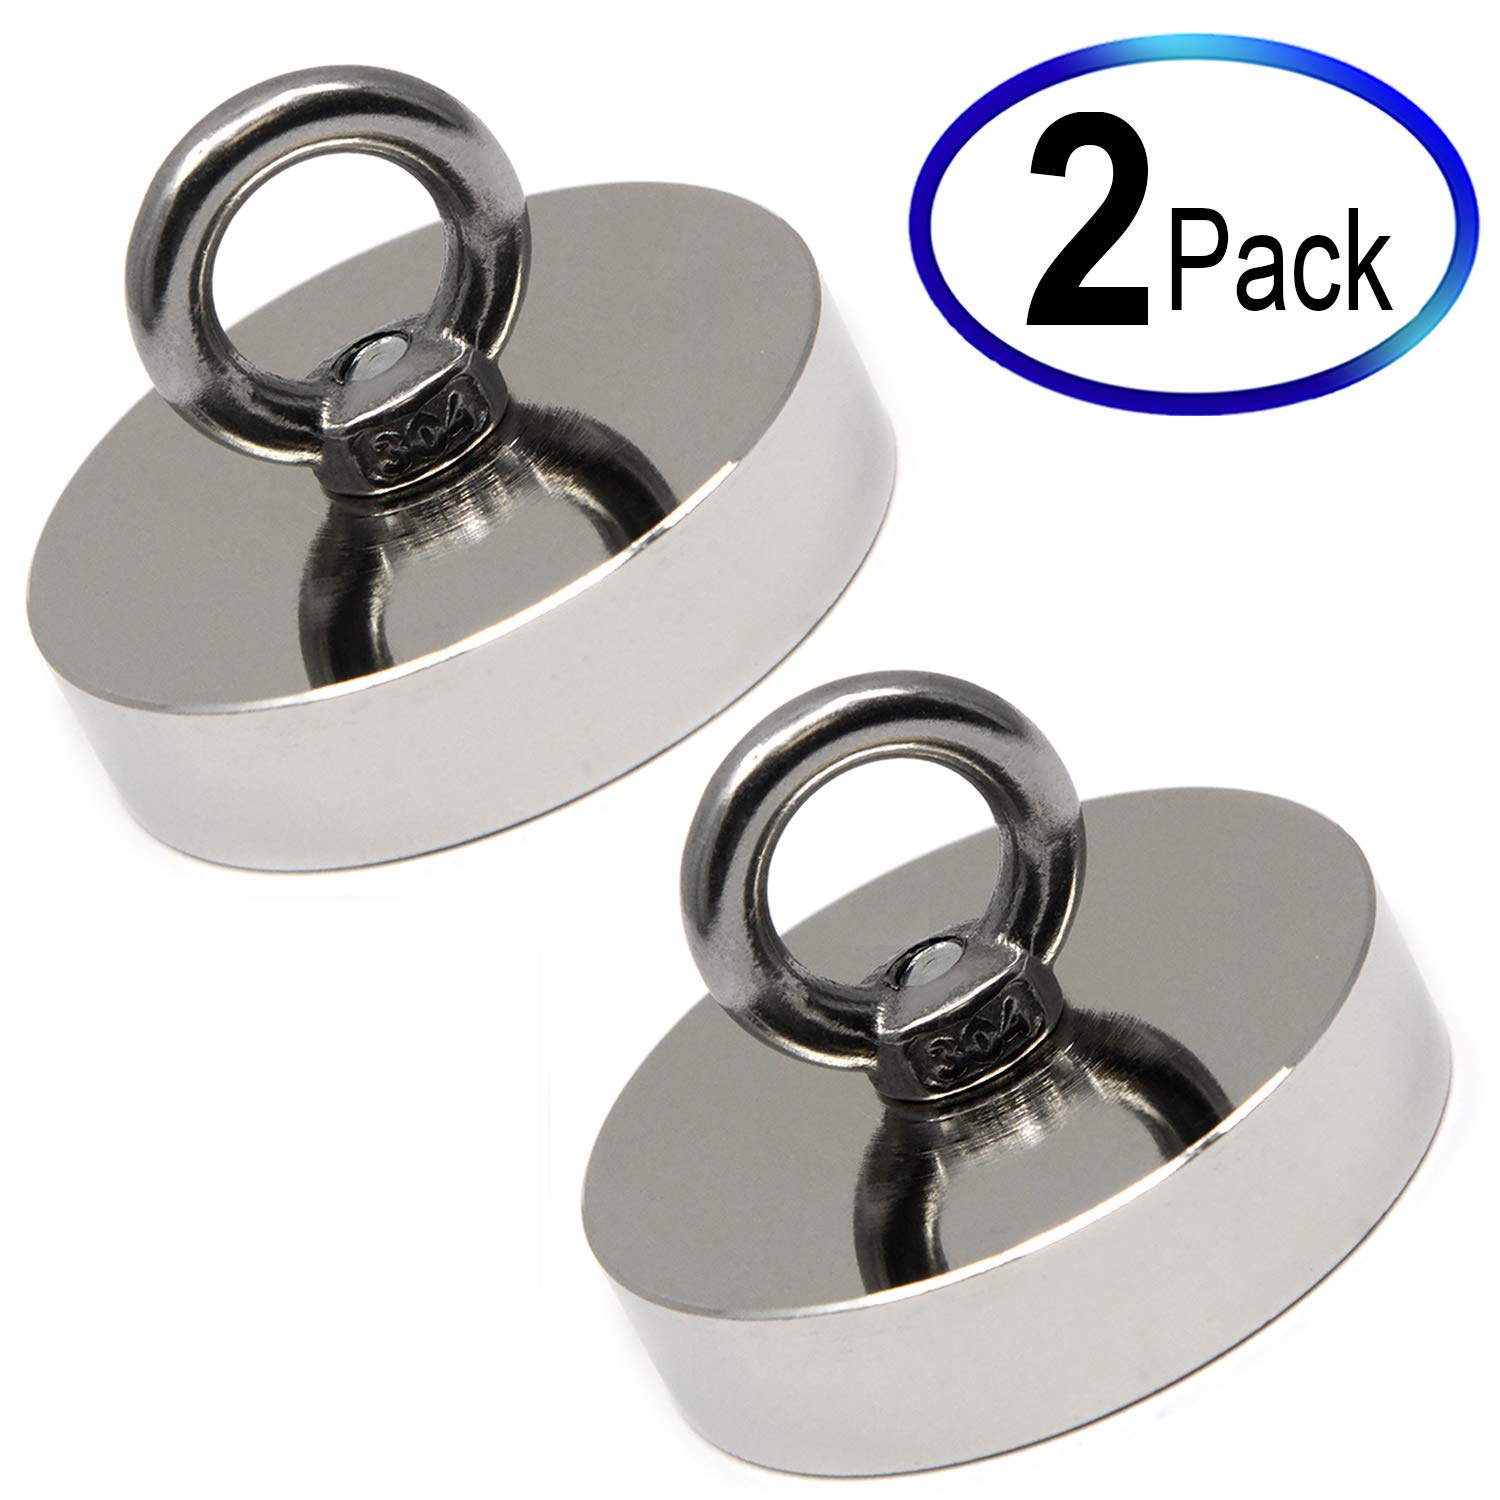 CMS Magnetics 2 Pack Fishing Magnets, Powerful Neodymium Magnets w/Eyebolts - 180 Pound Pulling Power Each. Great for Magnetic Fishing and Treasure Hunting